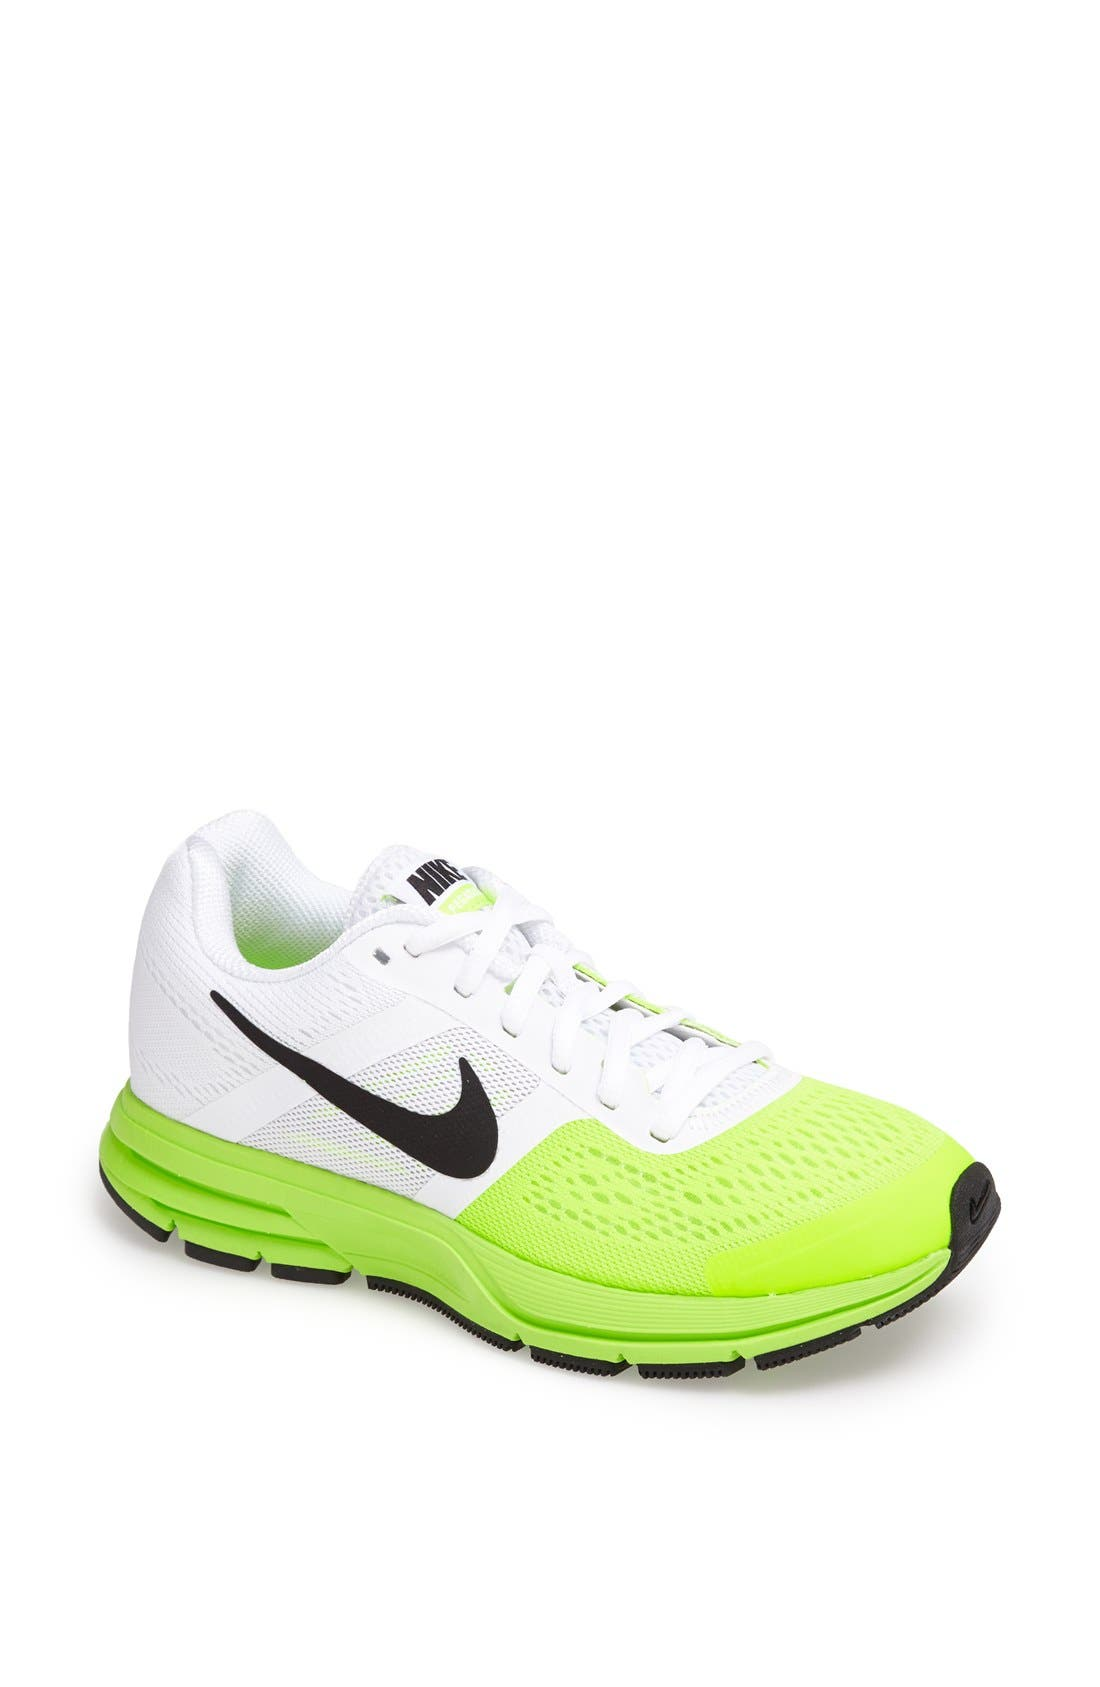 Alternate Image 1 Selected - Nike 'Air Pegasus+ 30' Running Shoe (Women)